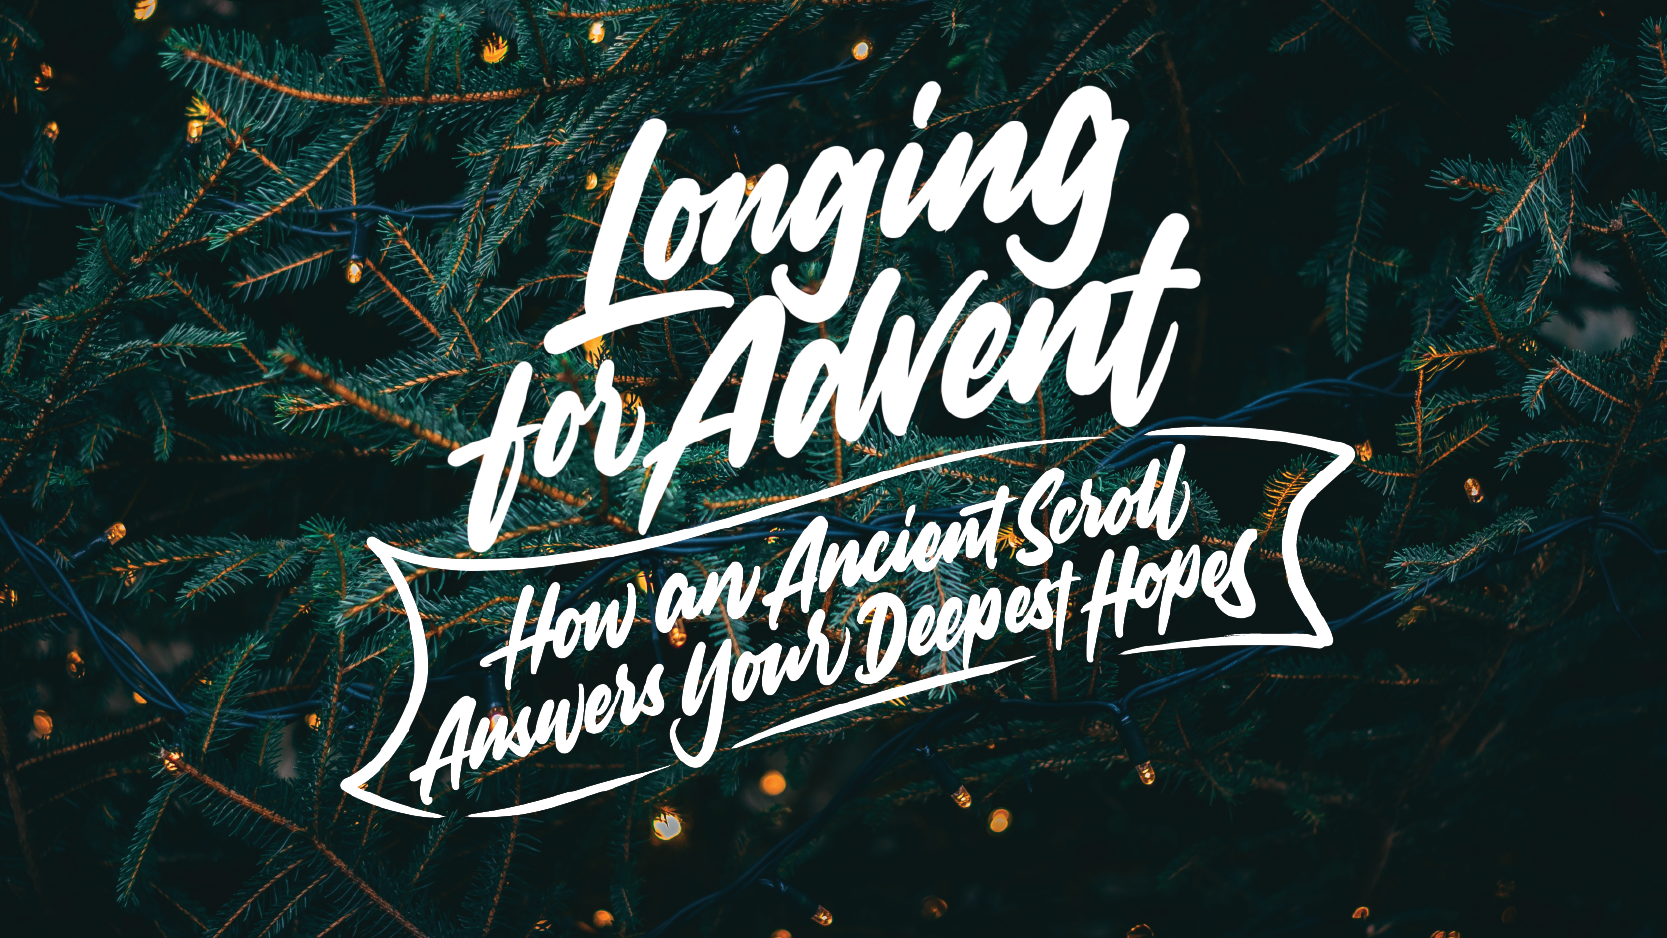 Longing for Advent (Bulletin)-01.png